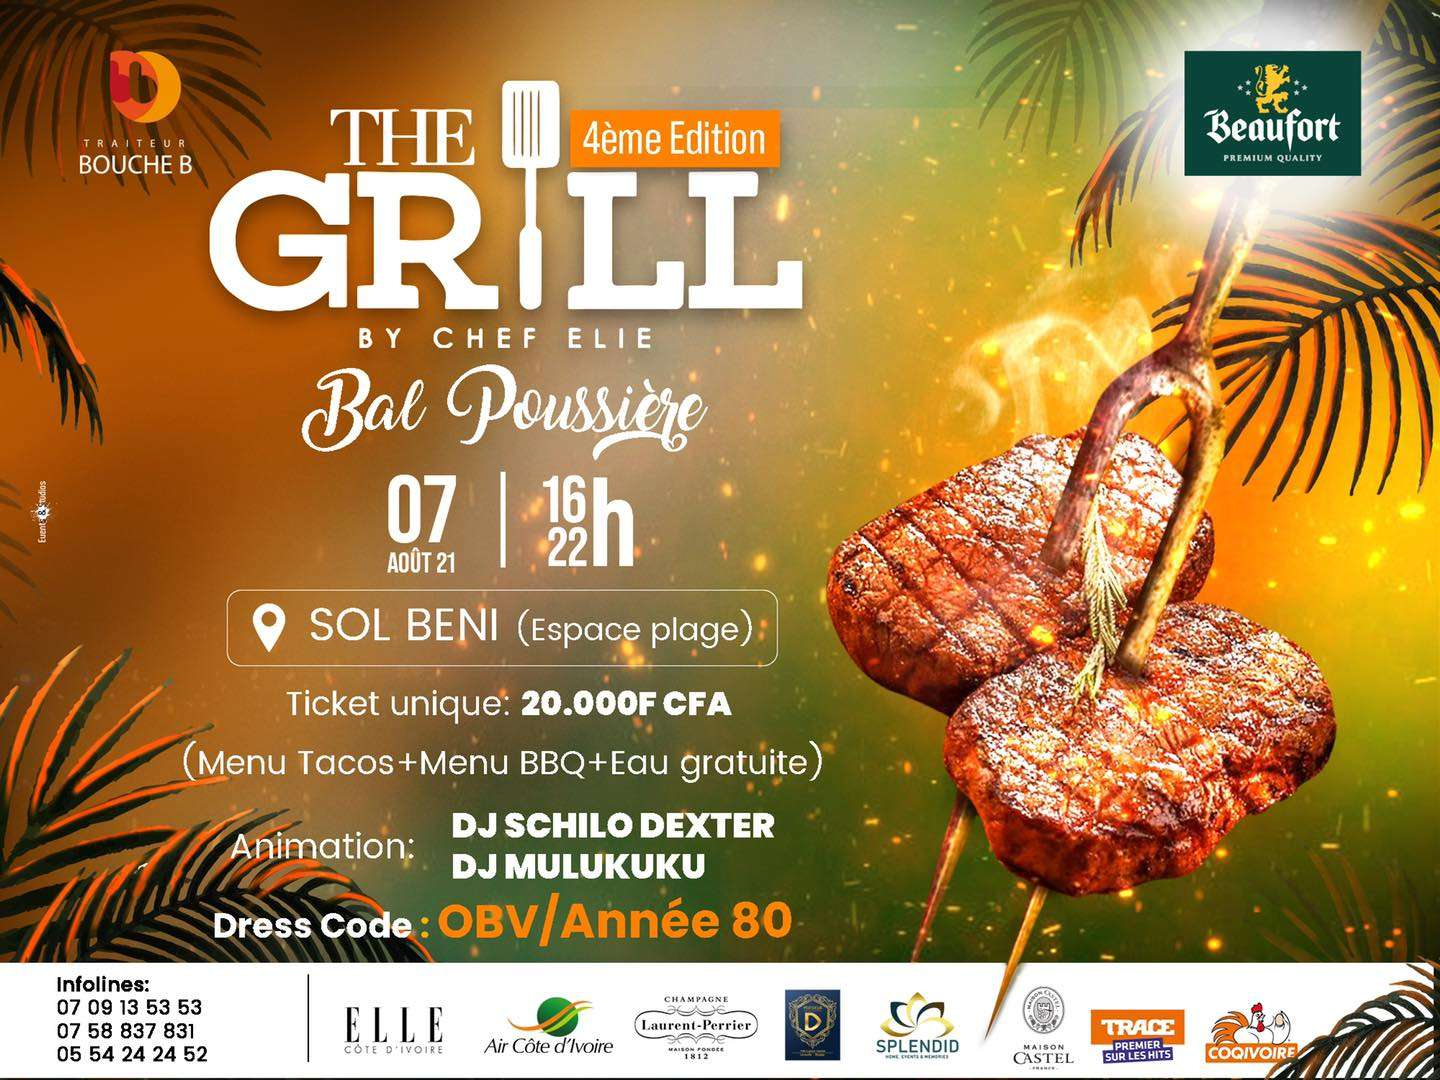 The Grill by Chef Elie